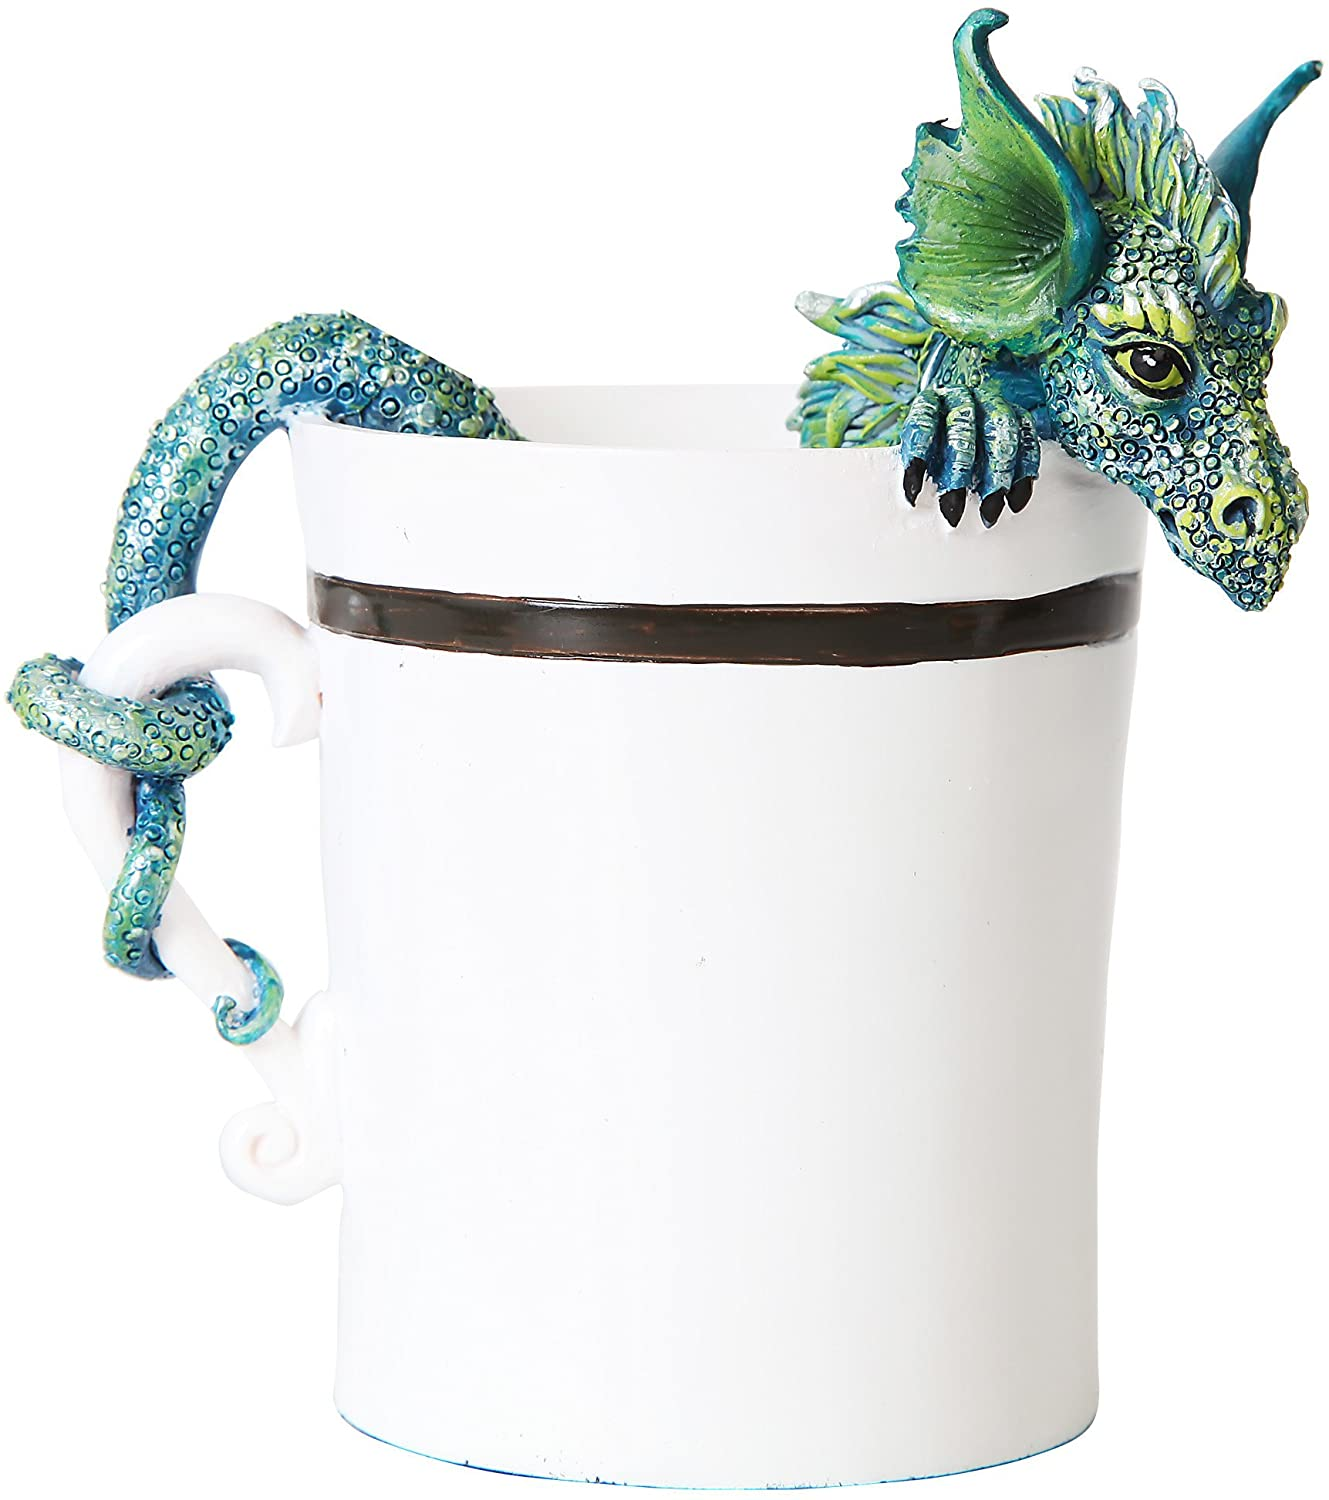 PTC 4 Inch Good Morning Dragon in White Coffee Cup Statue Figurine